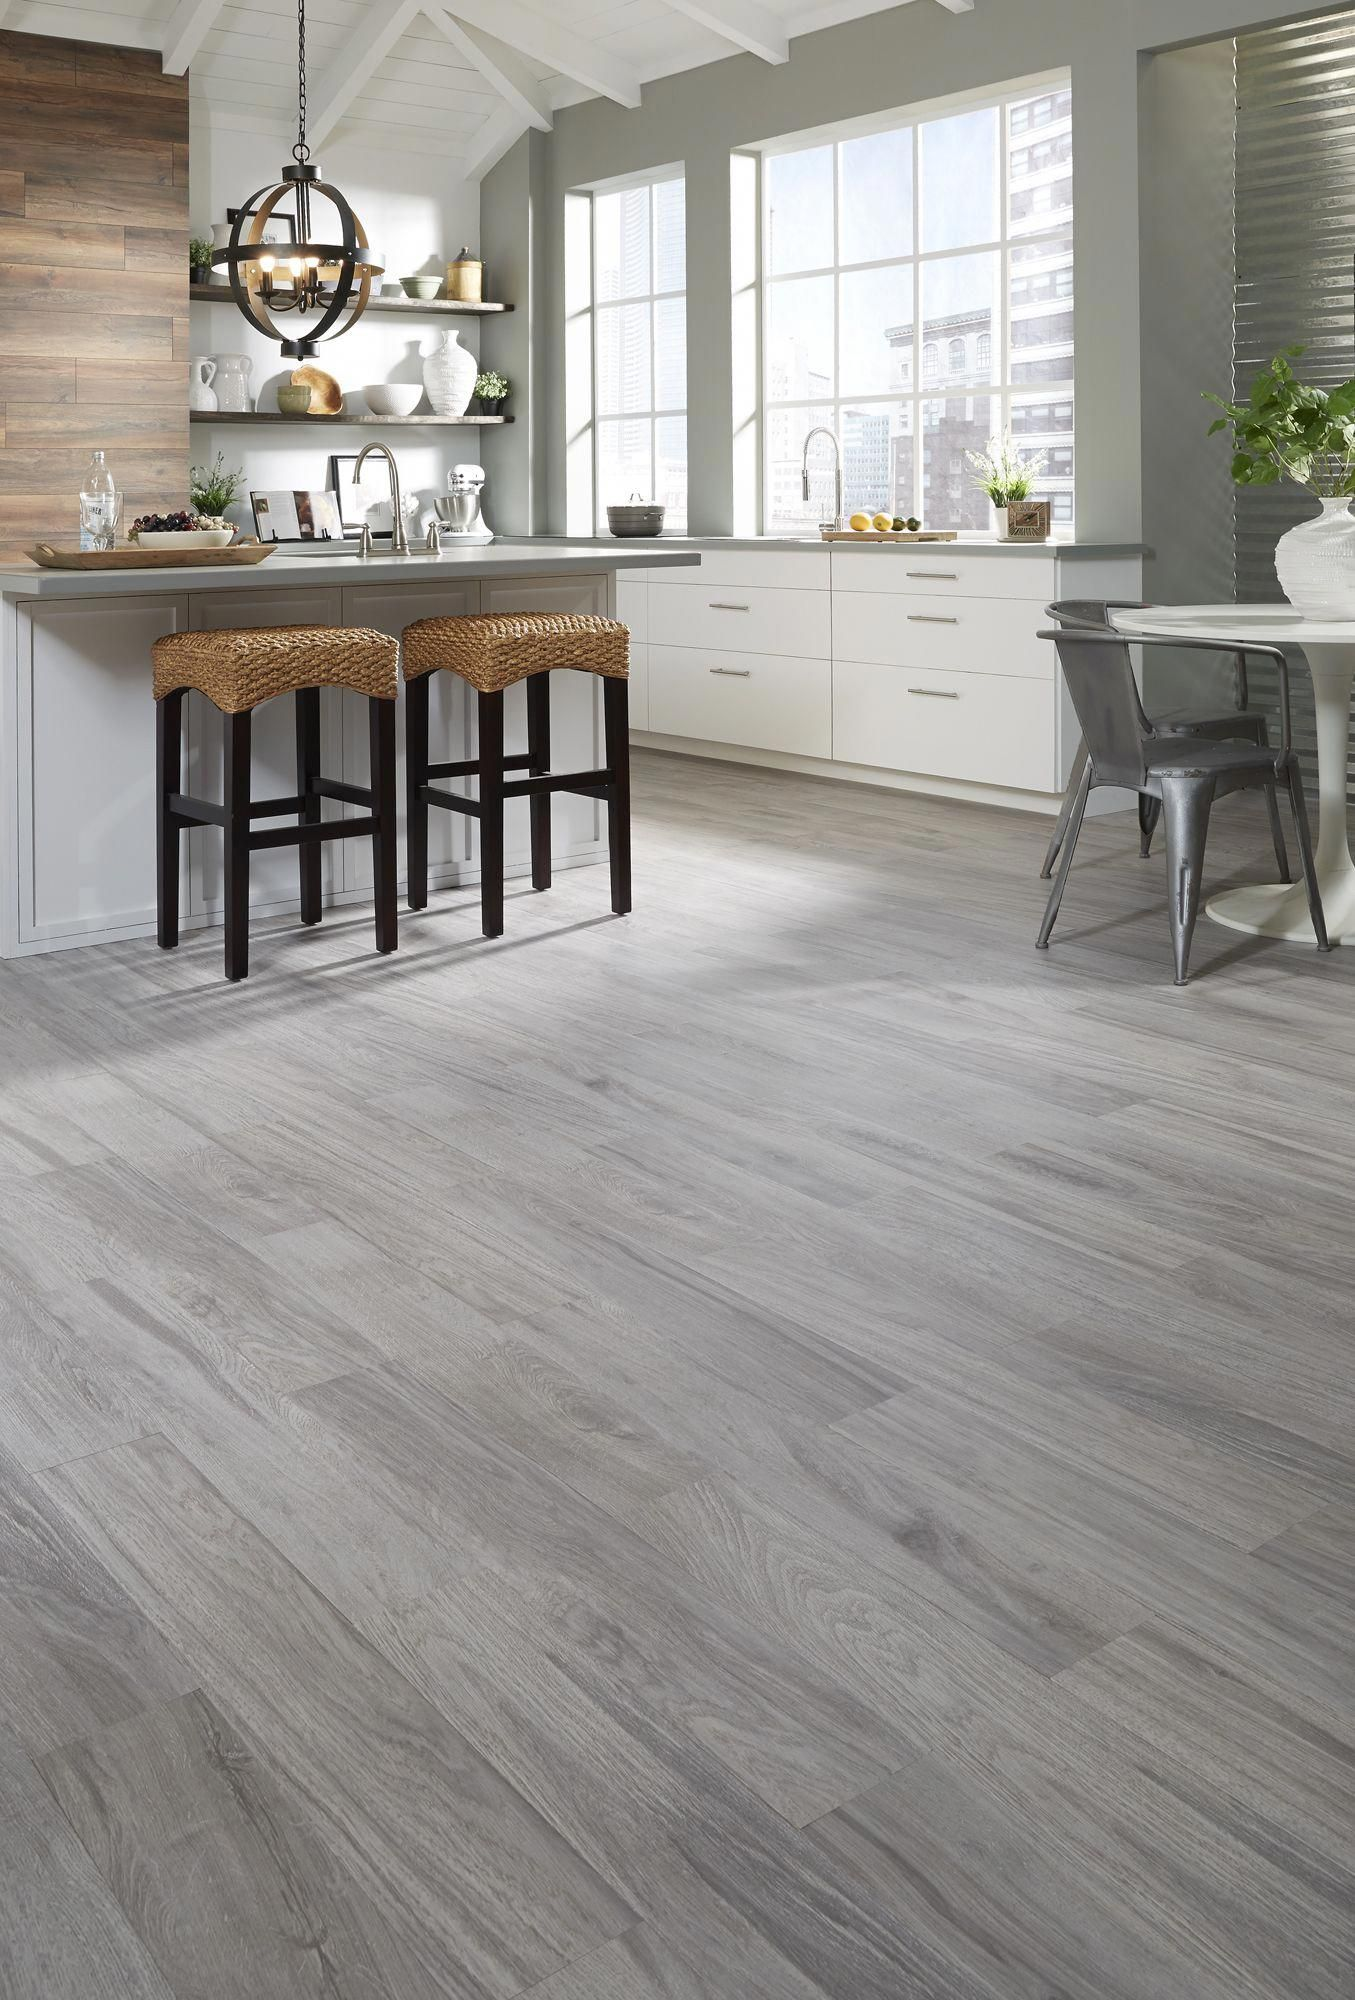 The Look Of Wood With The Waterproof Benefits Of Tile That S Oceanside Oak Gray By Avel Living Room Wood Floor Tile Floor Living Room Gray Wood Tile Flooring